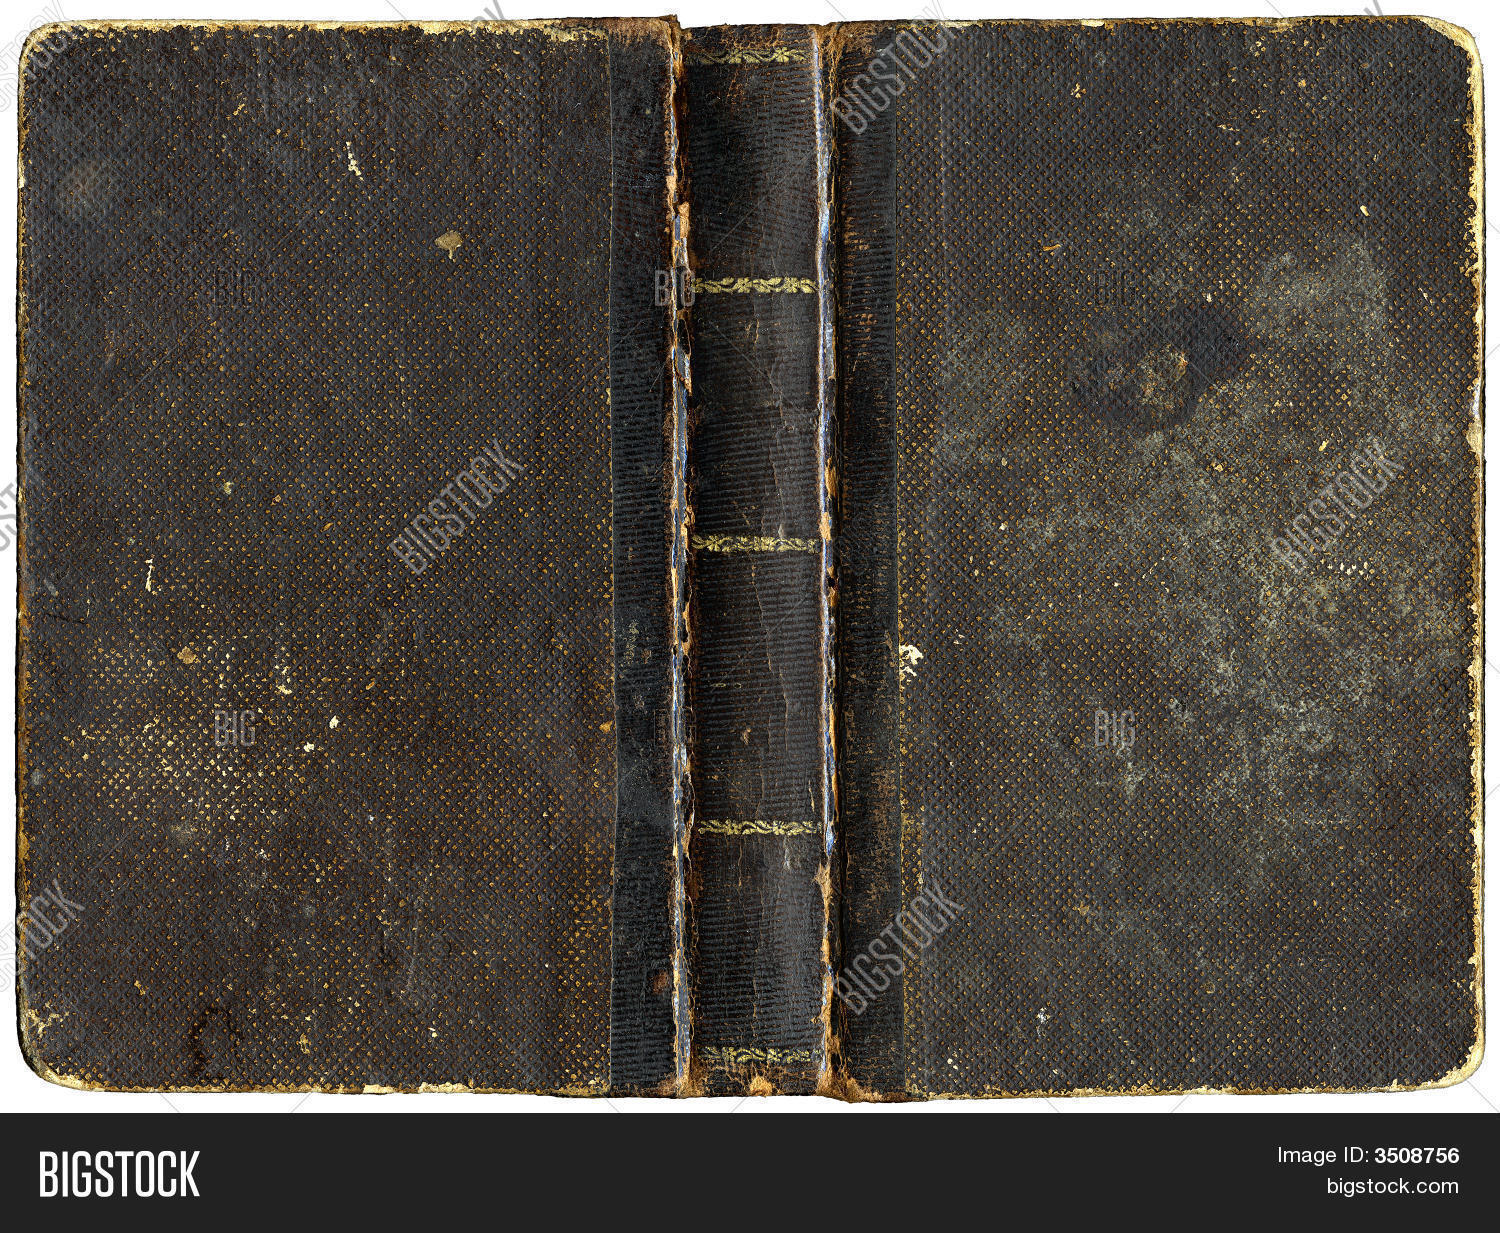 Old Book Cover Zip ~ Old book cover image photo bigstock